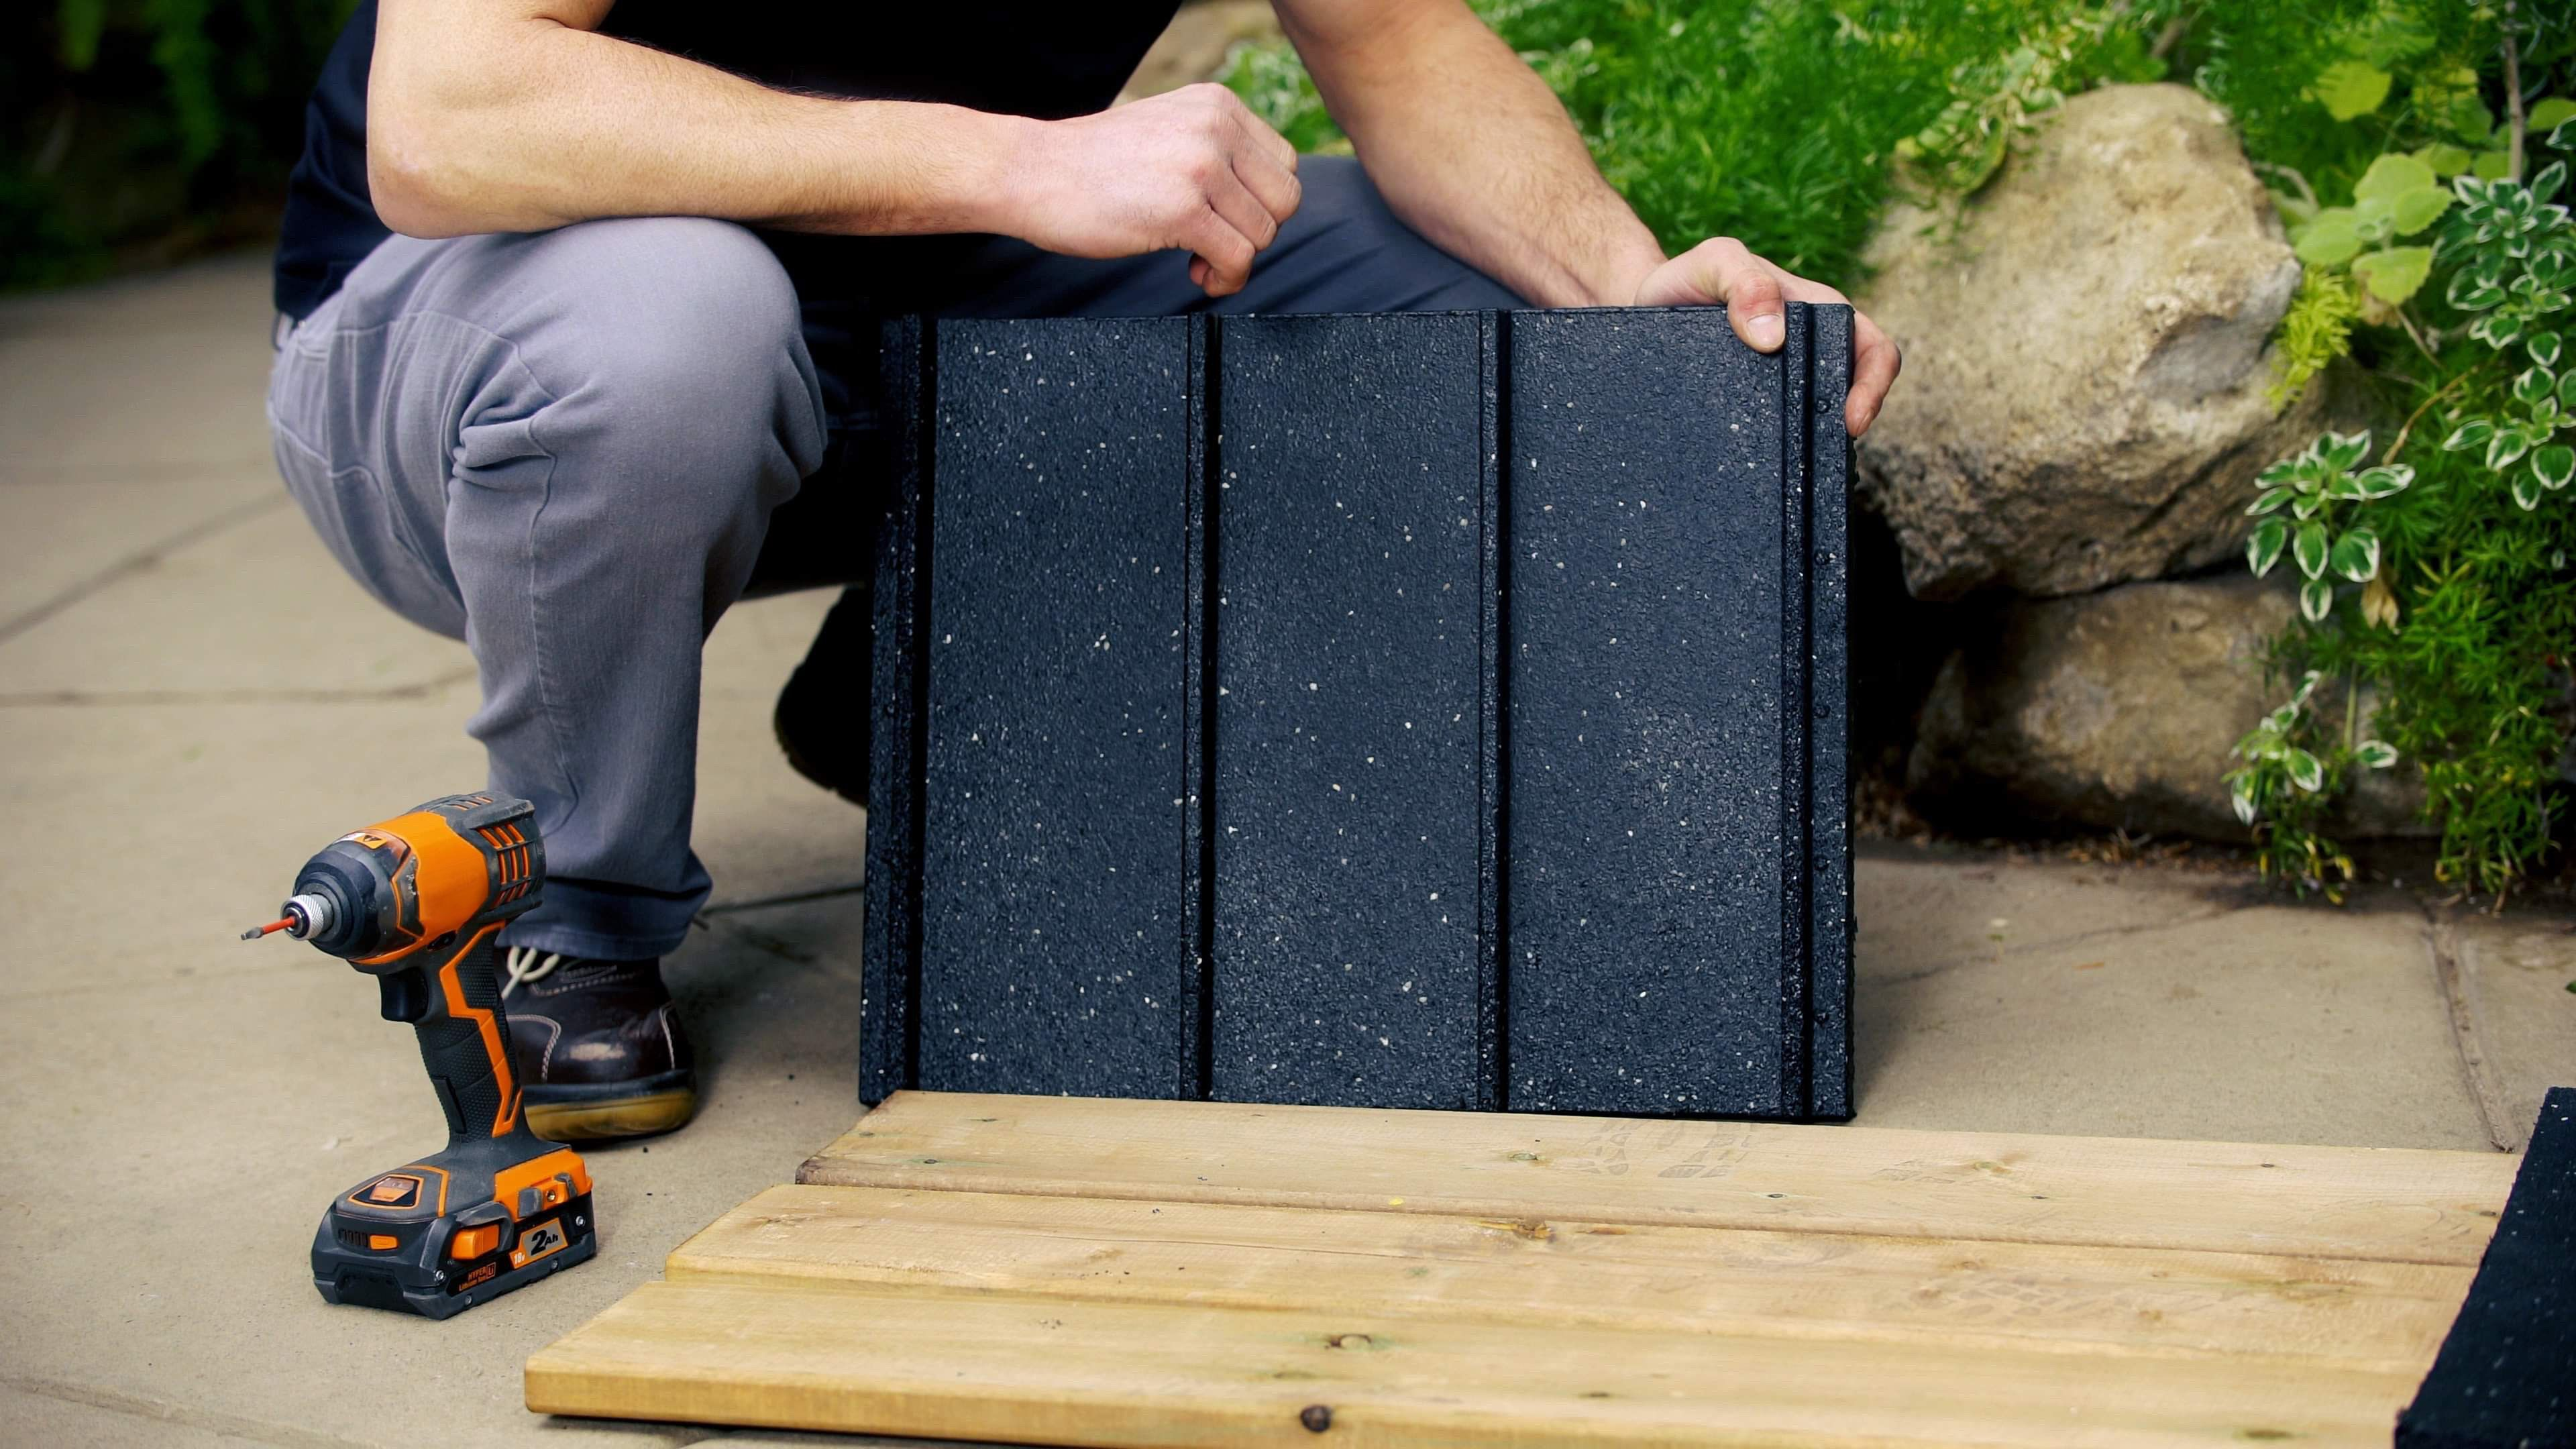 Multydeck Recycled Rubber Bases For Quick Install Floating Decks In 2020 Building A Floating Deck Recycled Rubber Floating Deck